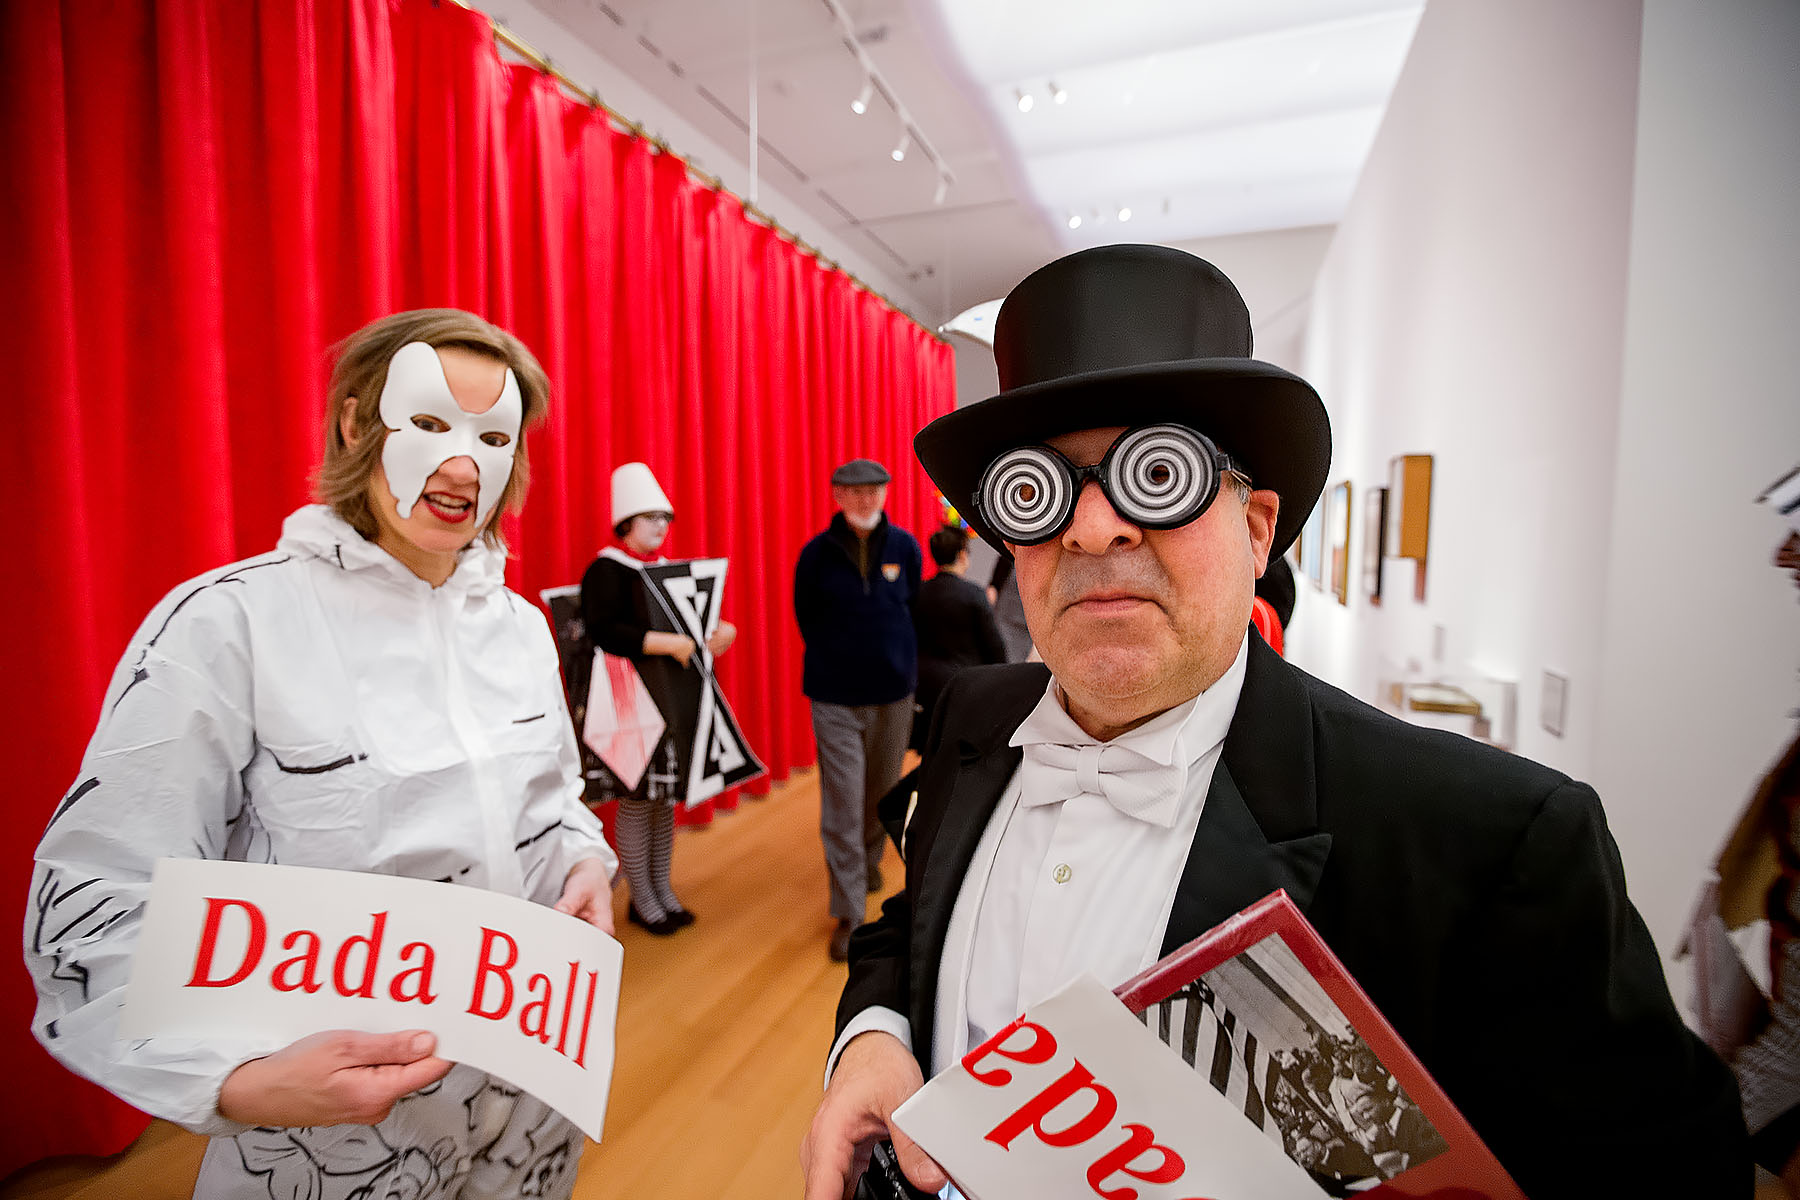 16-043 Dada Ball at the Yale Art Gallery 2/25/16